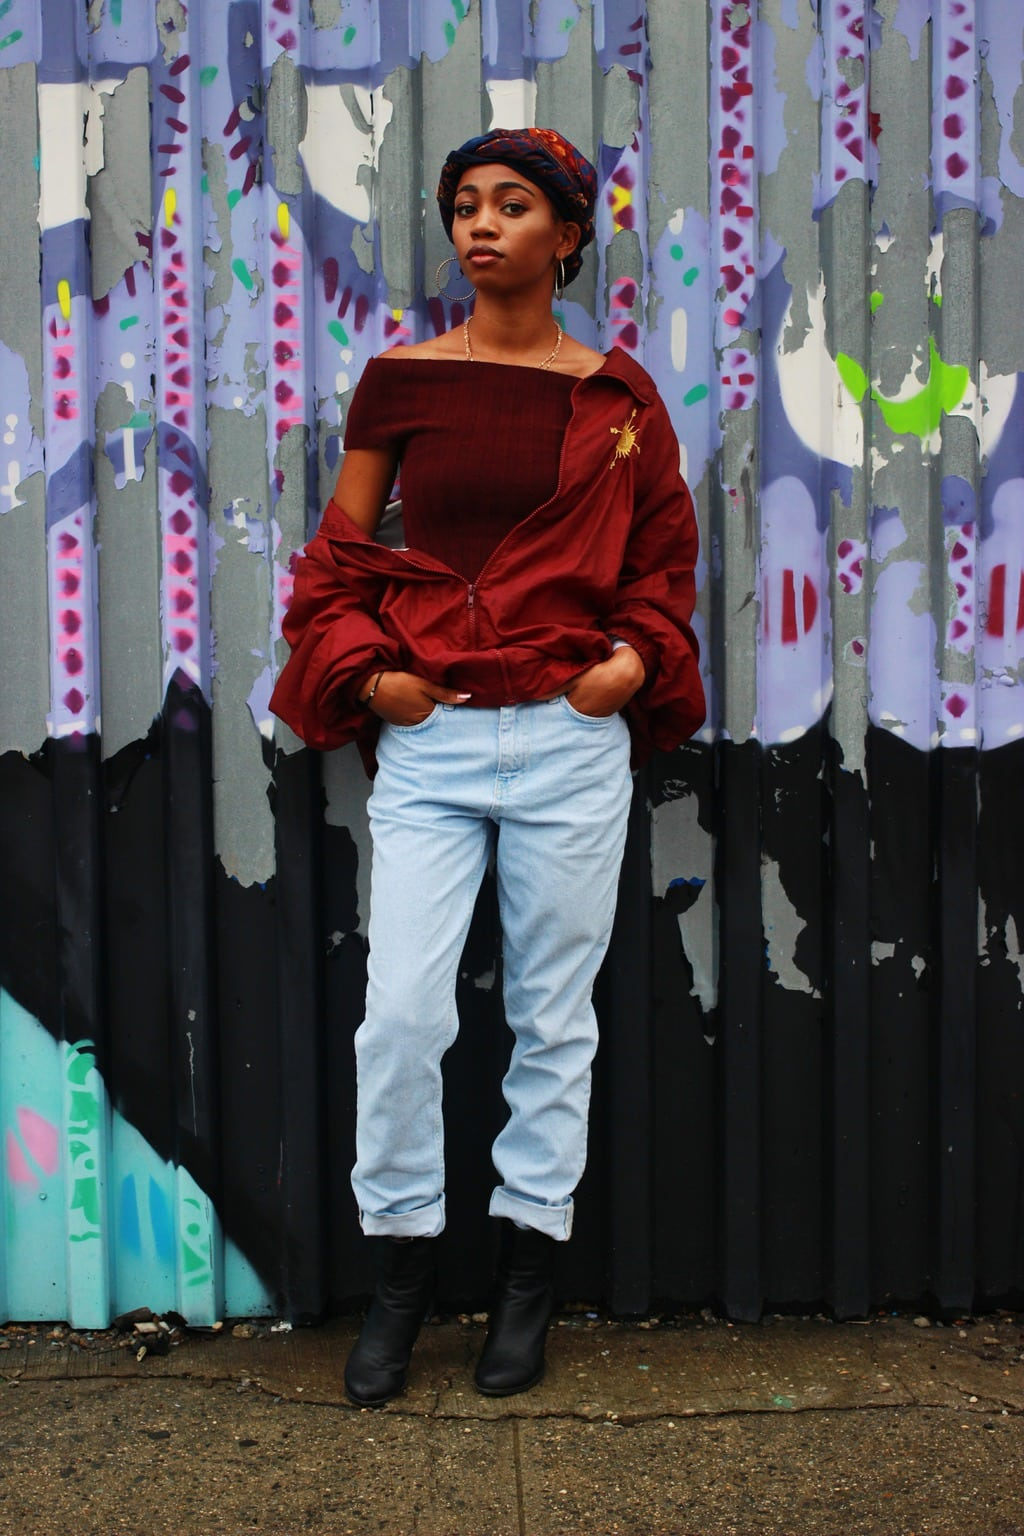 Student style; oxblood off-the-shoulder top, vintage windbreaker jacket, headscarf, distressed light-wash jeans, and chunky black booties.